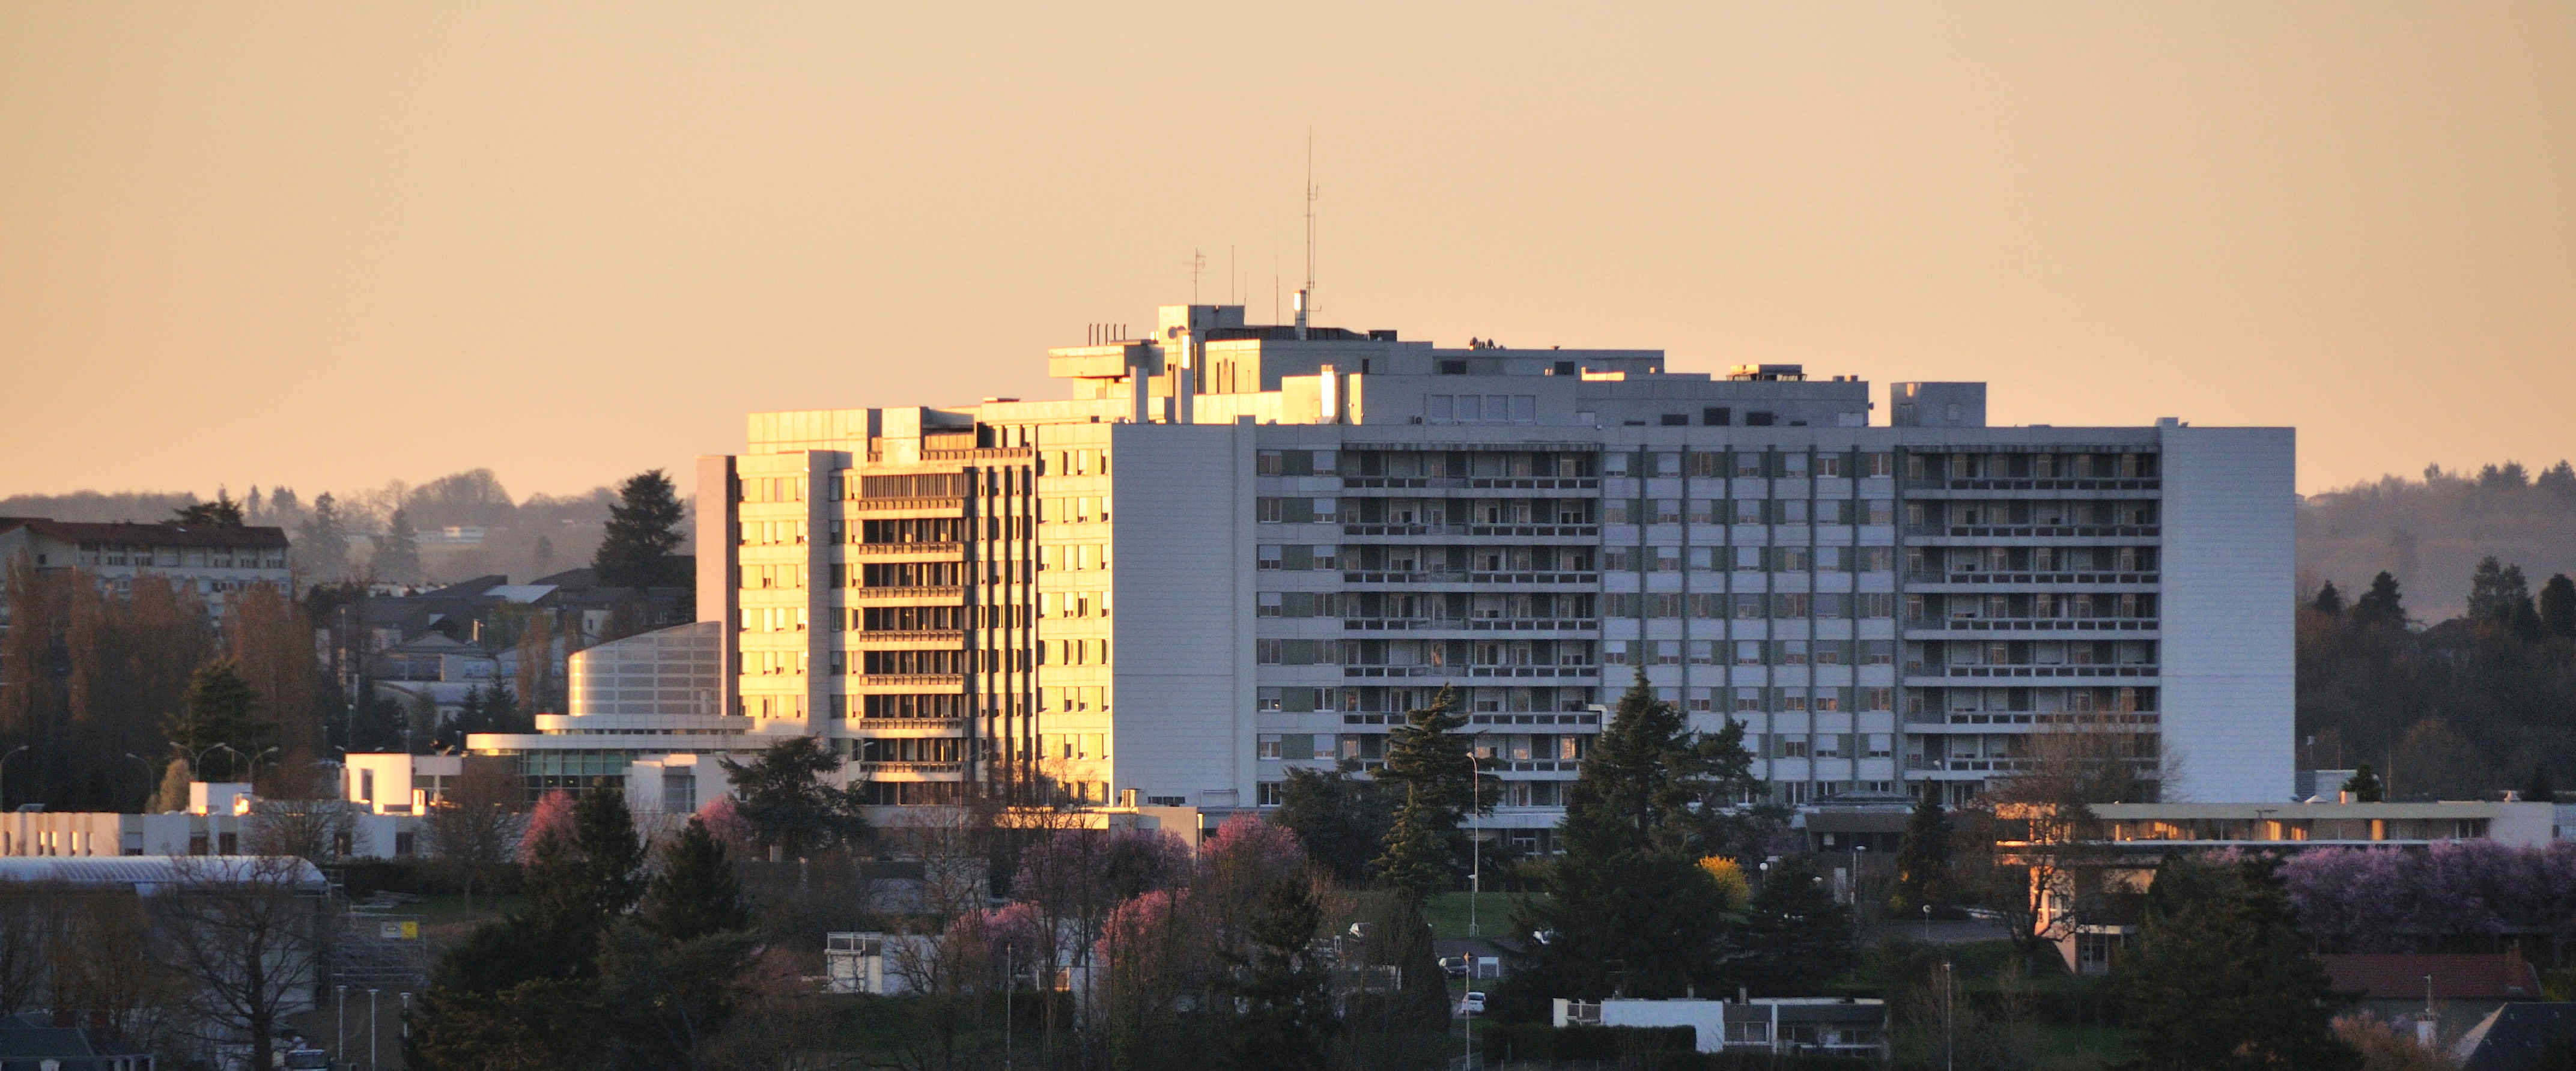 Panoramique CHU Limoges